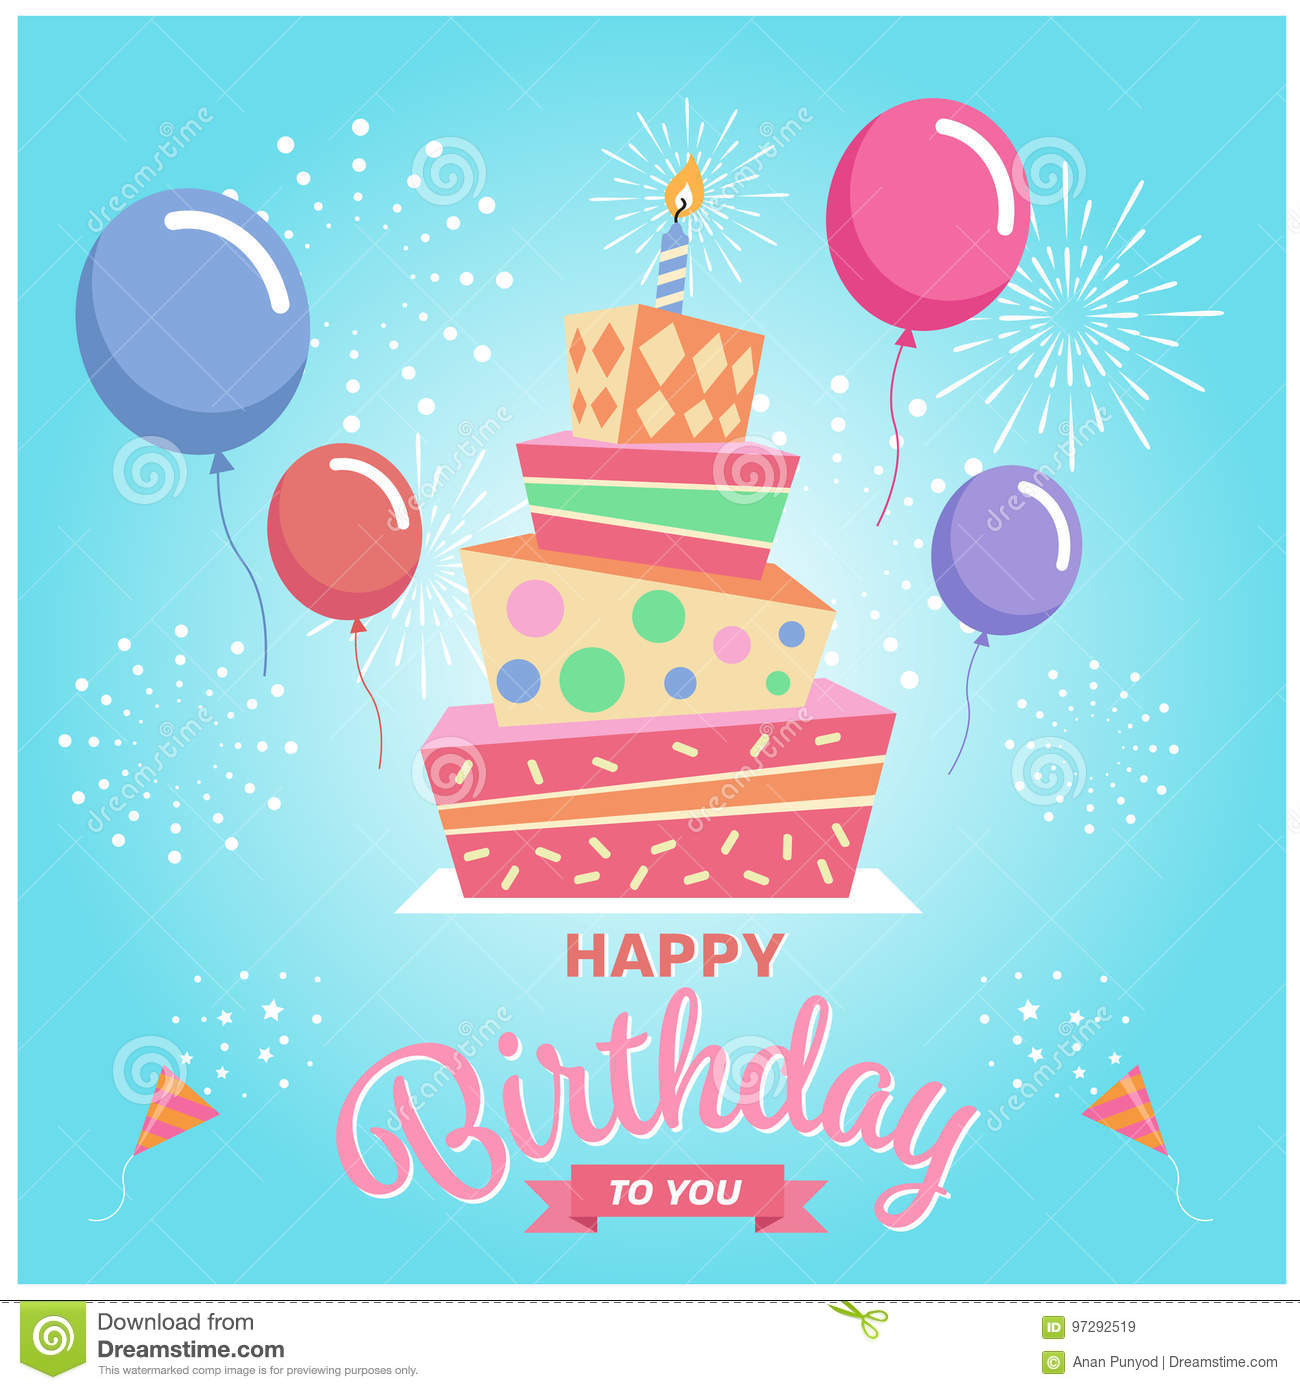 Happy Birthday To You With Square Cake Balloon And Firework On